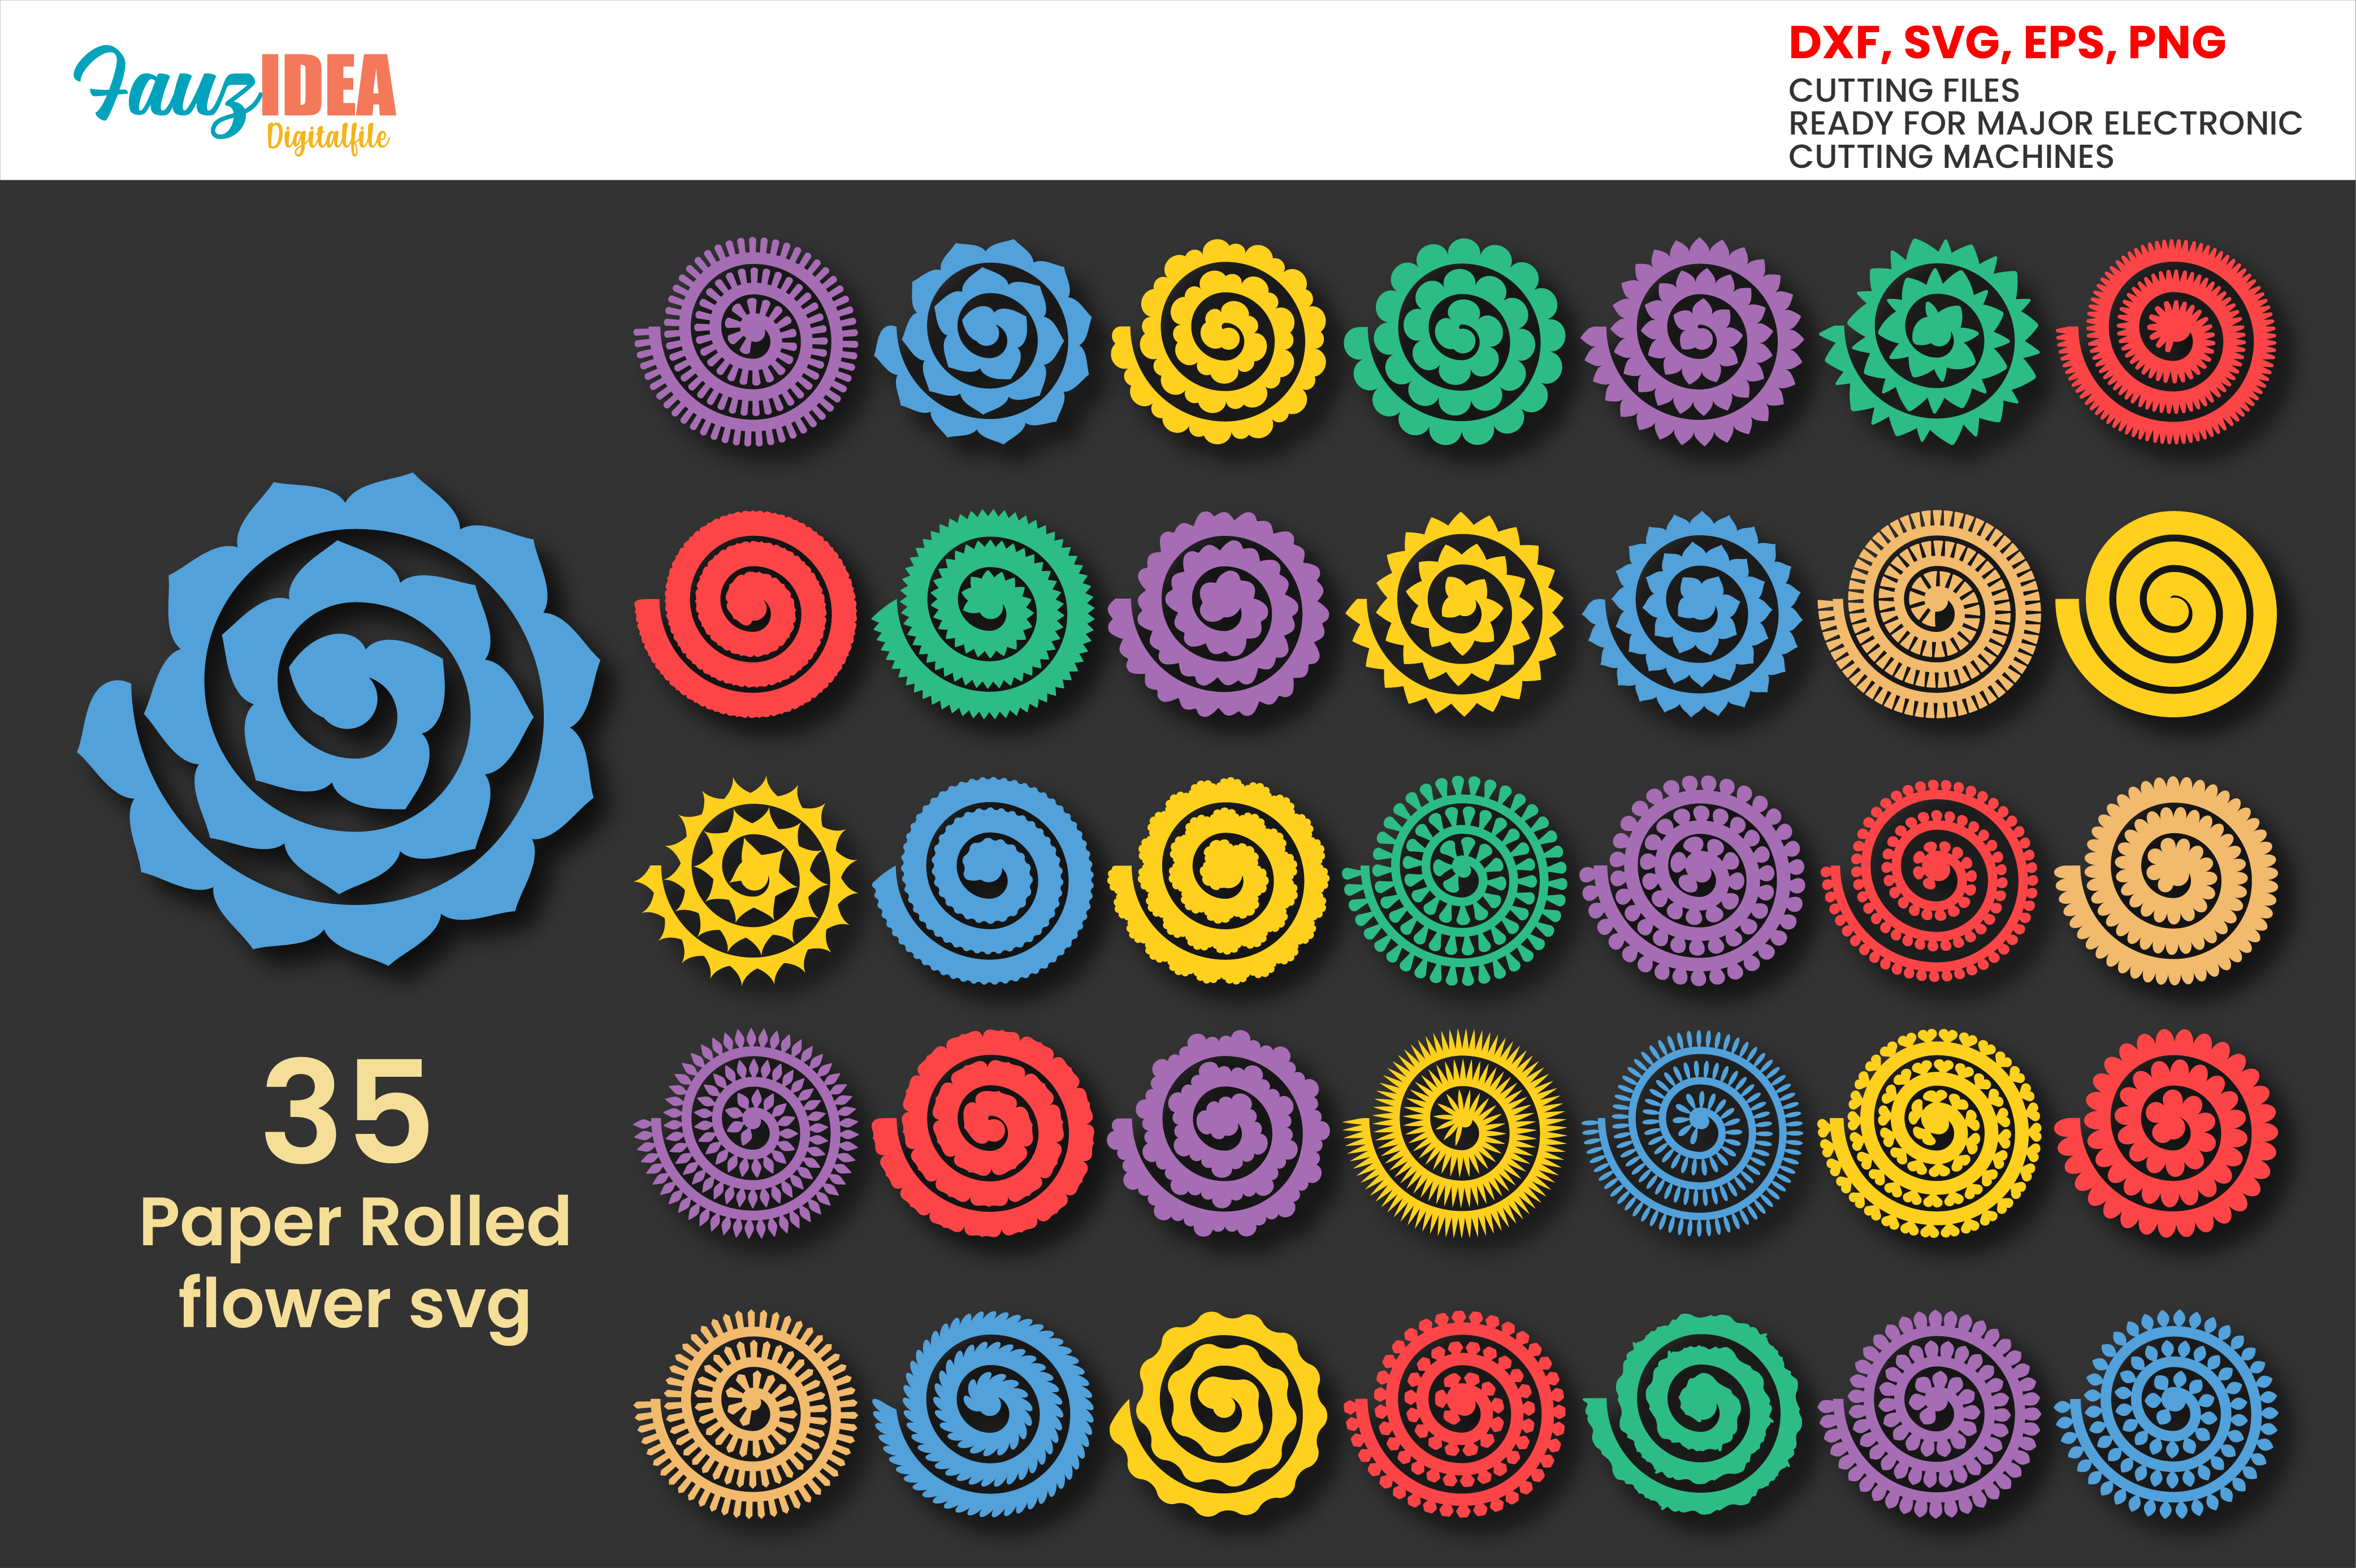 Rolled Paper Flowers Svg Template, SVG File